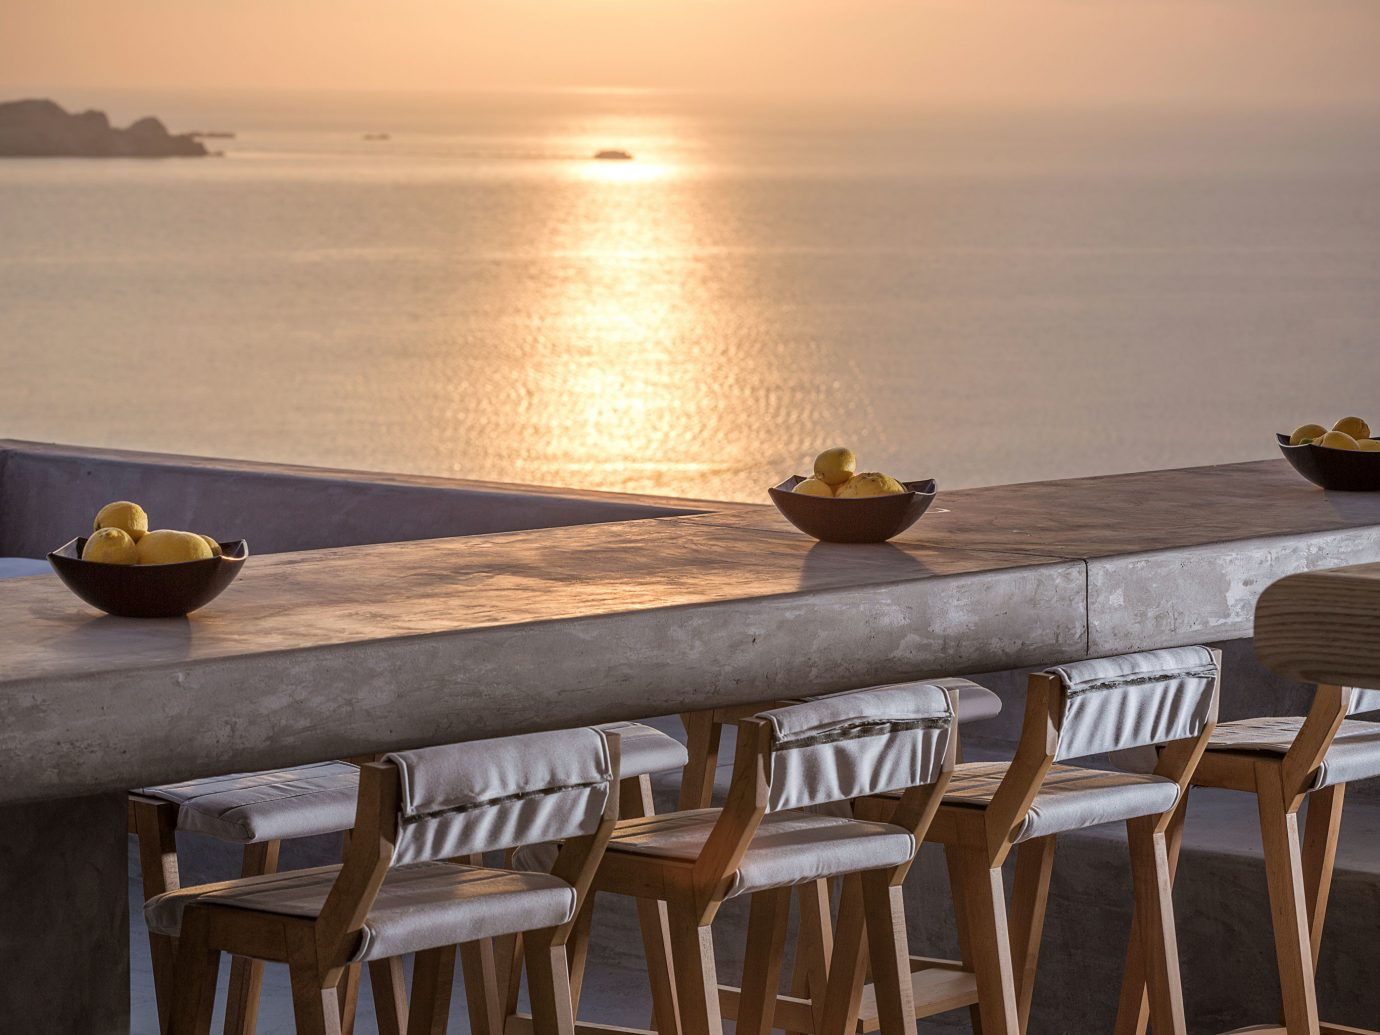 Bar Dining Drink Eat Luxury Ocean Scenic views Trip Ideas table water chair wooden room restaurant wood furniture dining table